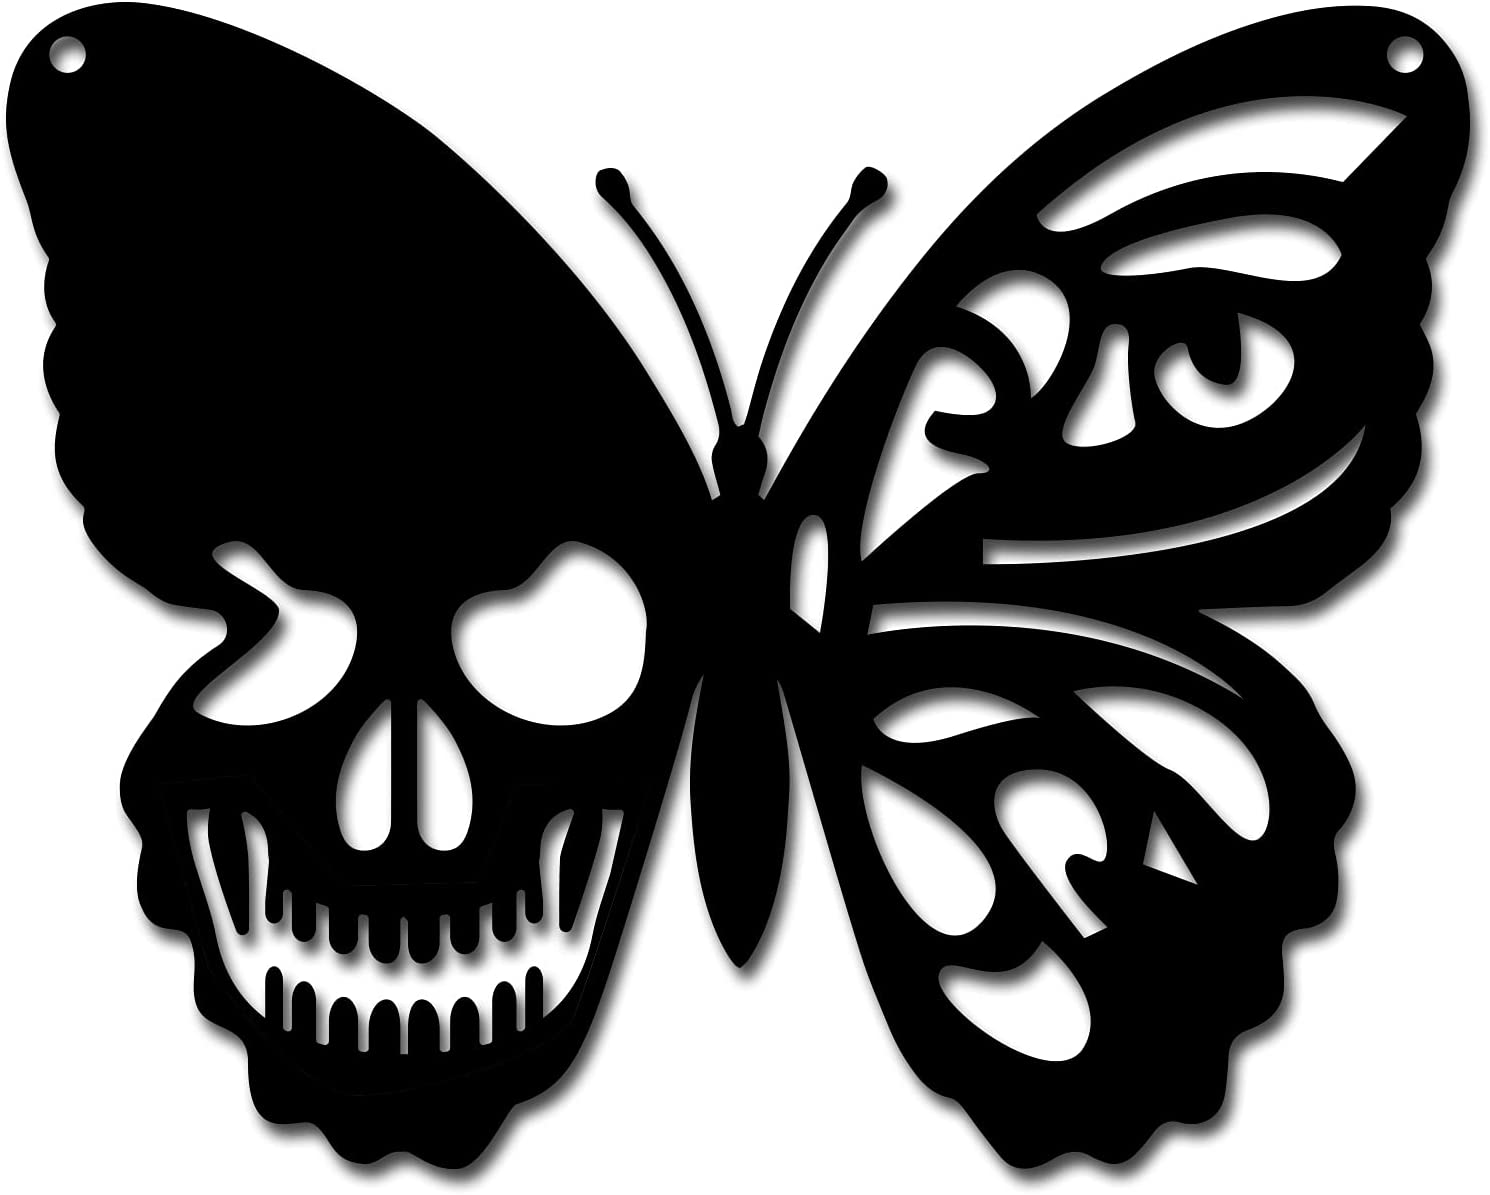 CREATCABIN Metal Wall Art Butterfly Skull Decor Wall Hanging Plaques Ornaments Iron Wall Art Sculpture Sign for Indoor Outdoor Home Livingroom Kitchen Garden Office Decoration Gift Black 6.3 x 7.9inch